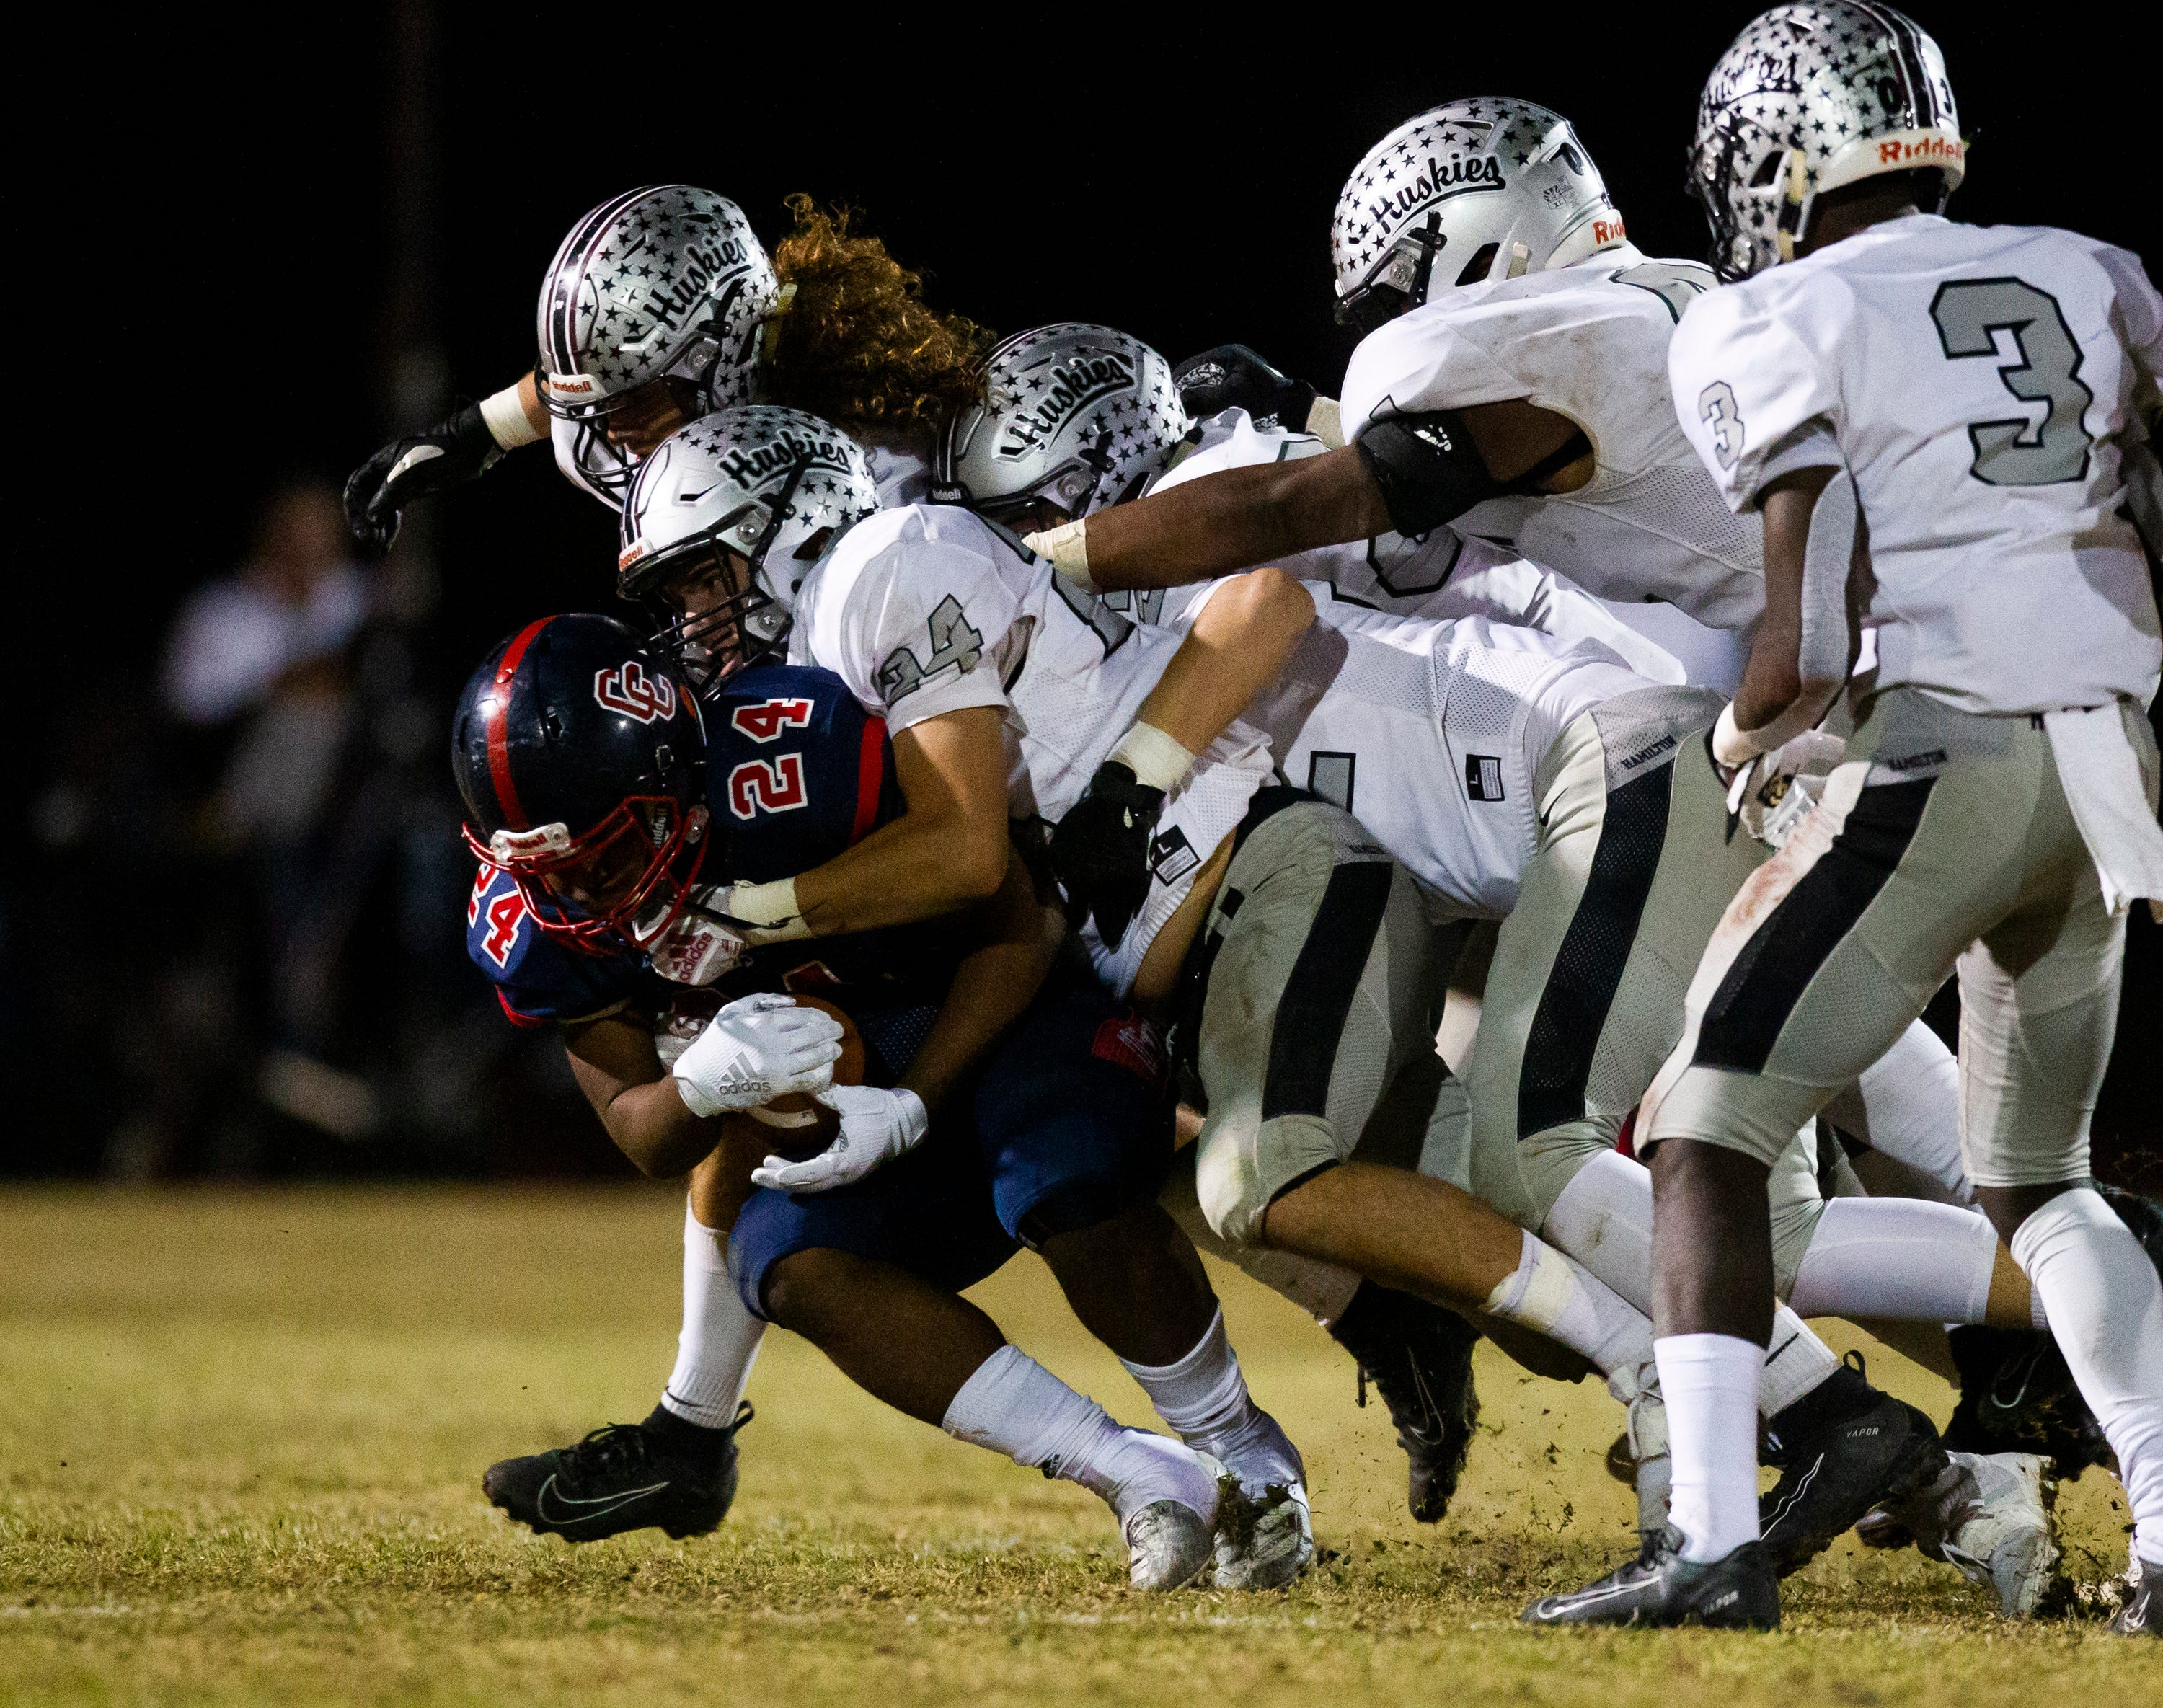 Hamilton's run continues to Open Division semifinals with win at No. 2 Centennial - AZCentral